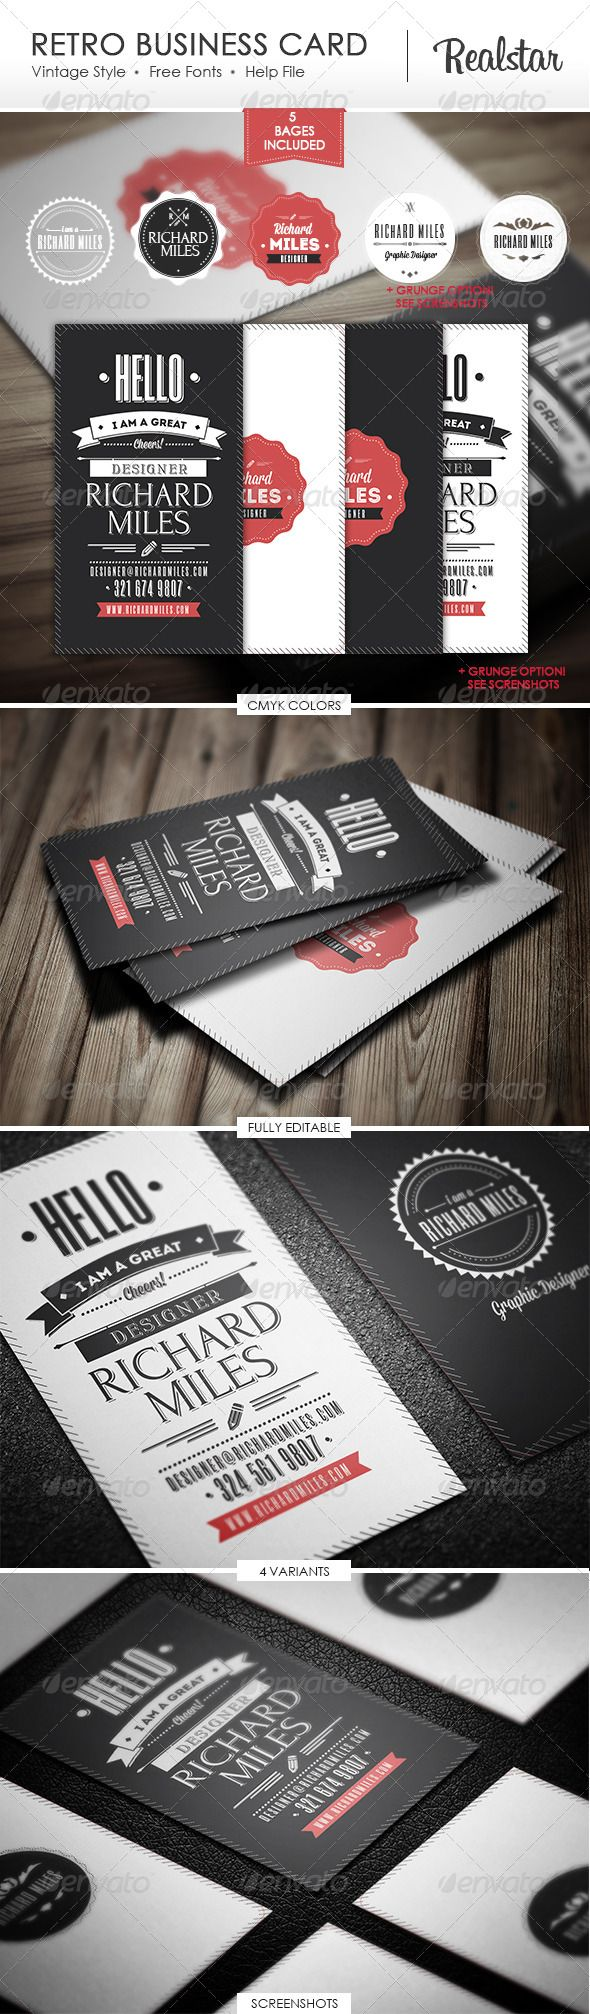 464 best business cards images on pinterest business card design retro business card solutioingenieria Choice Image